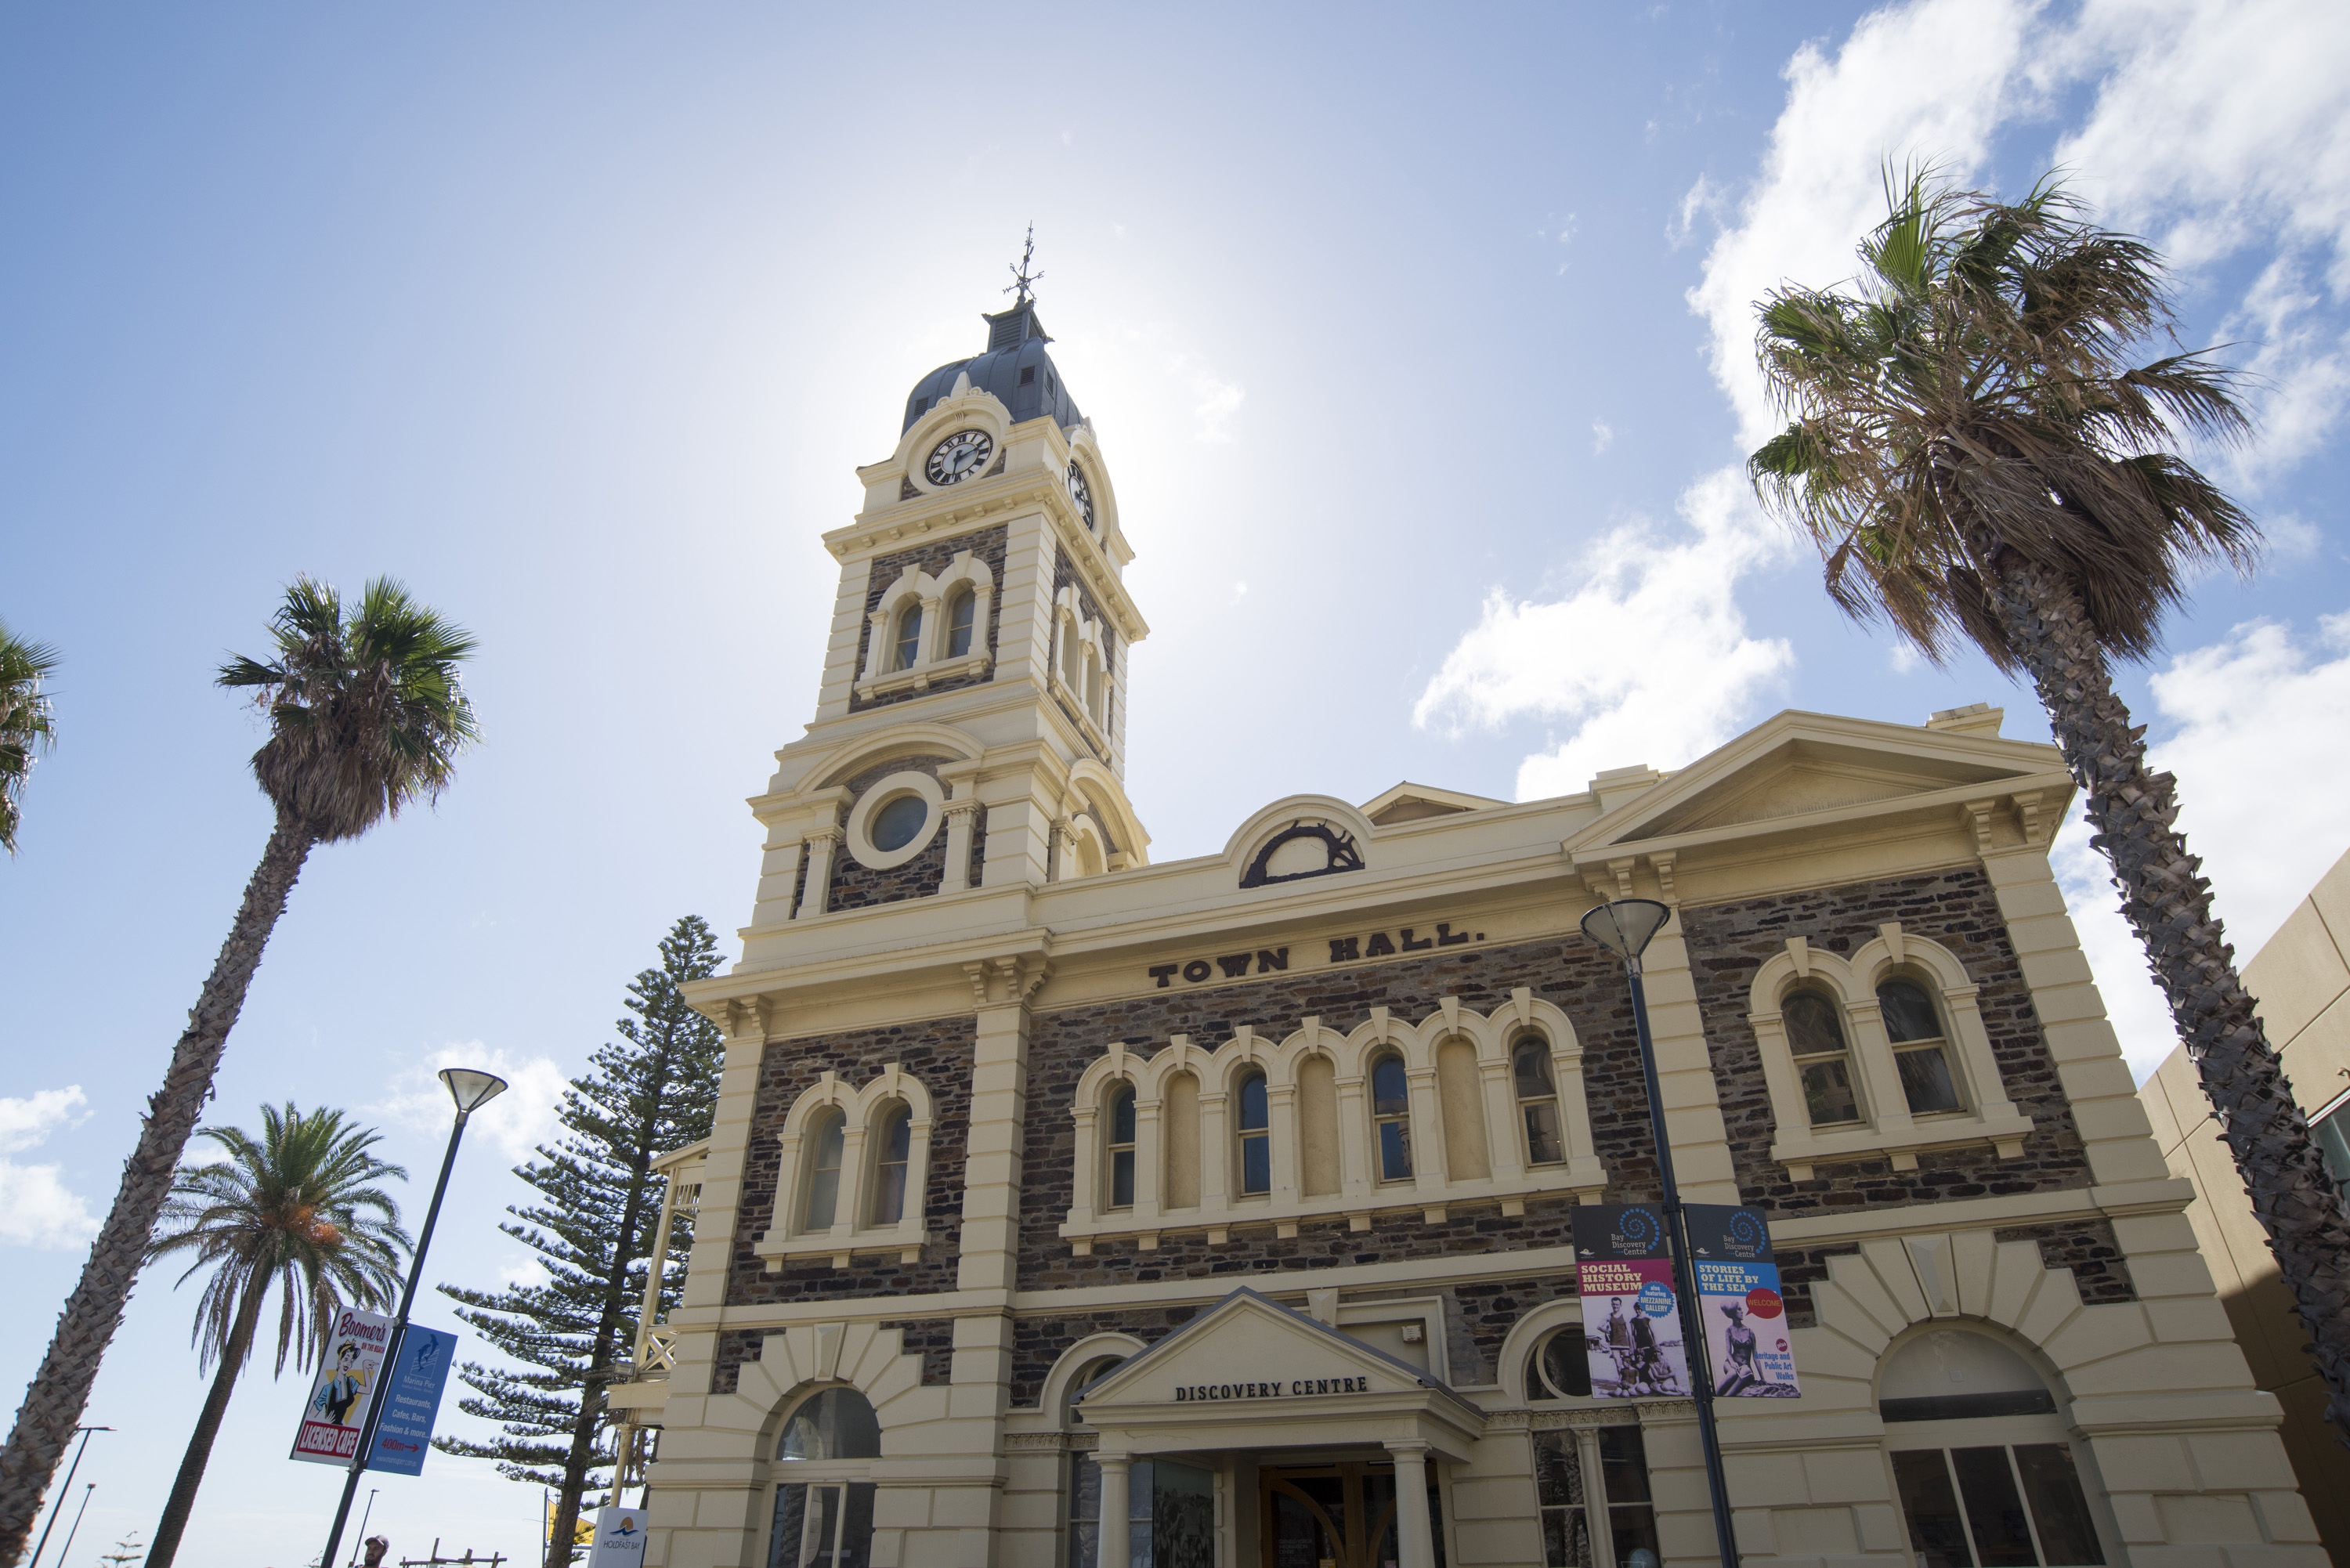 The front facade of the Town Hall, Glenelg, Adelaide, South Australia with its arched windows and clock tower flanked by tall tropical palm trees